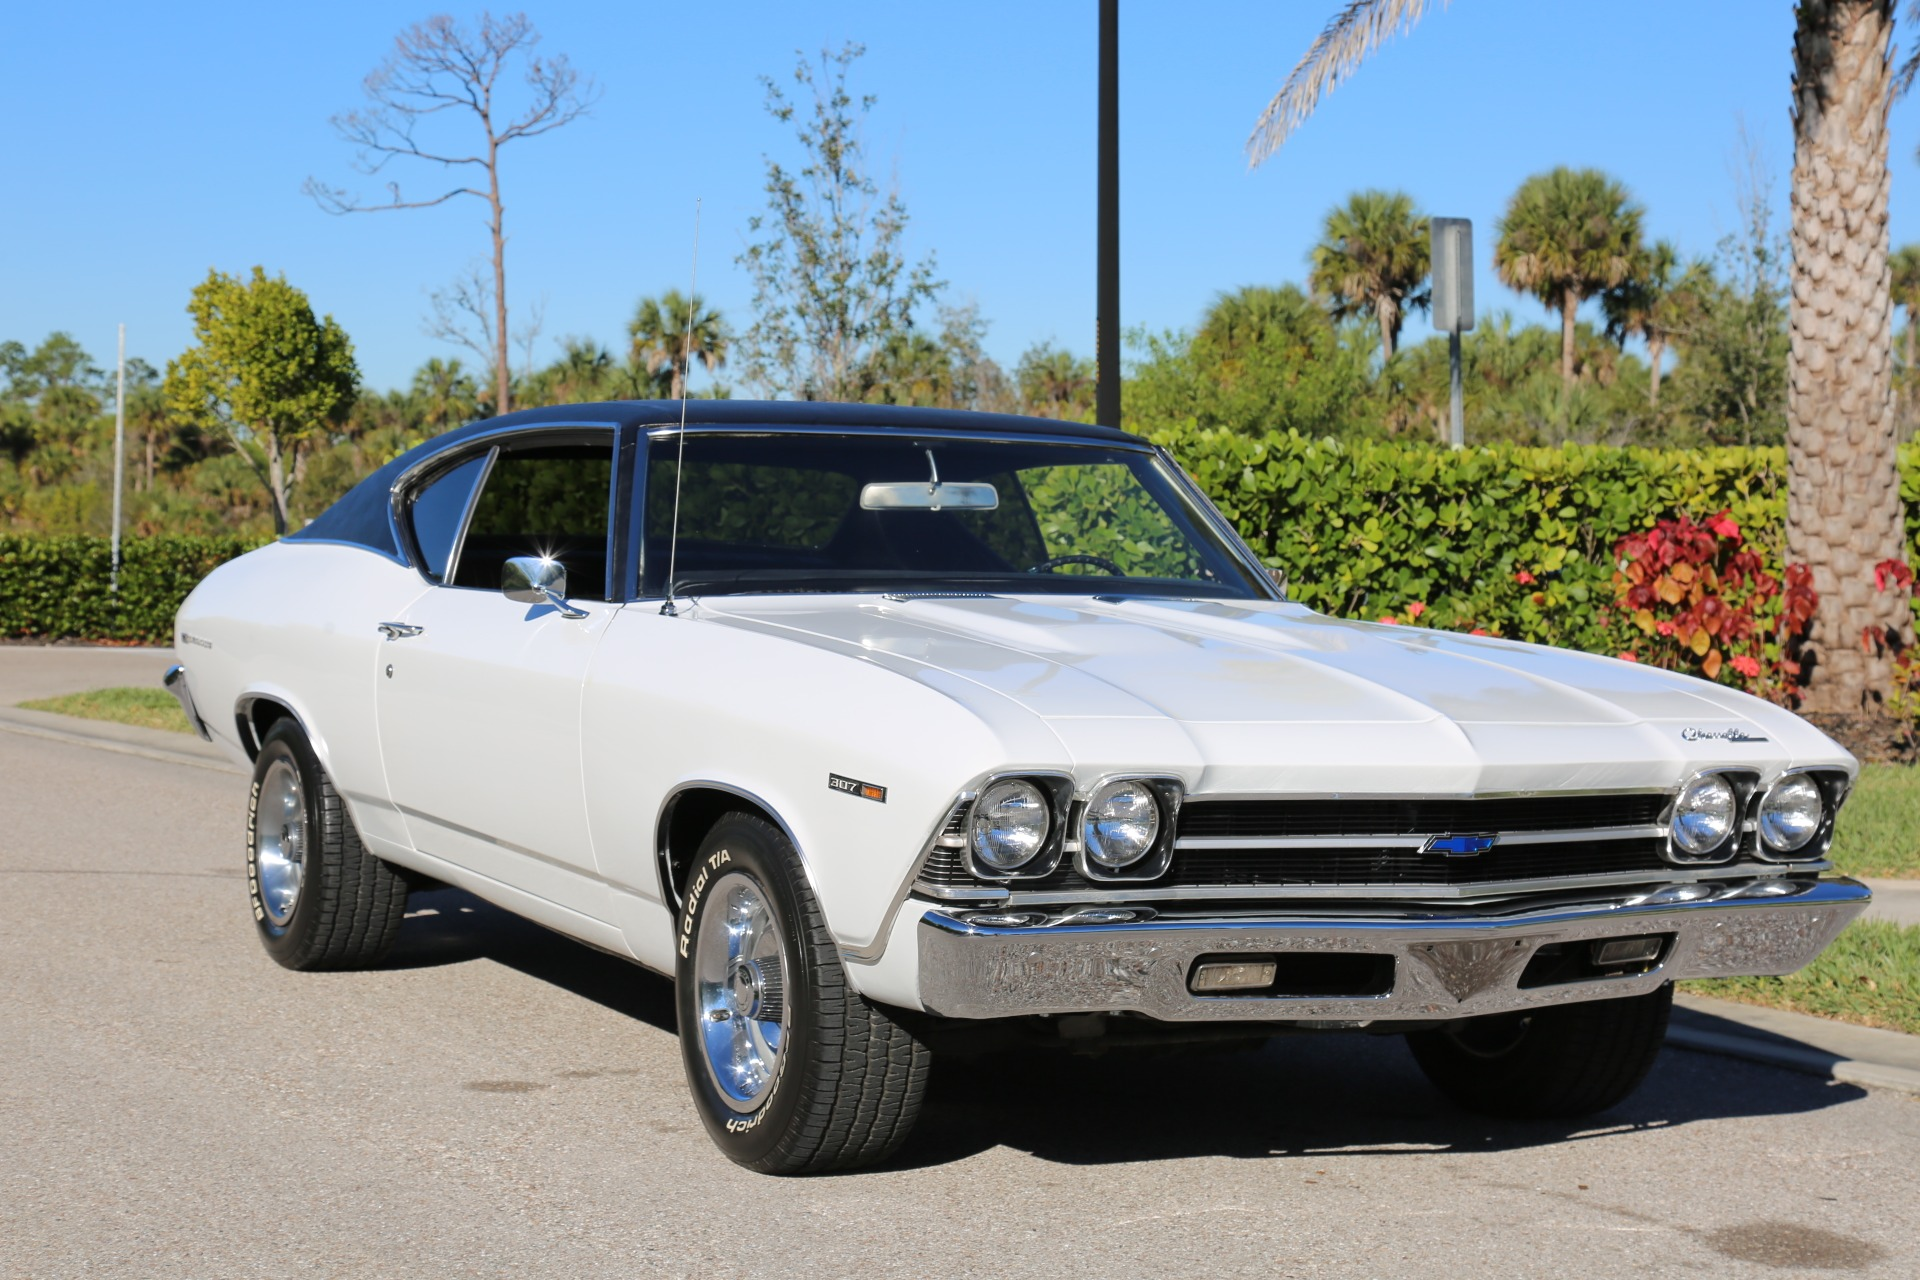 Used 1969 Chevy Chevelle V8 Auto for sale $27,000 at Muscle Cars for Sale Inc. in Fort Myers FL 33912 2